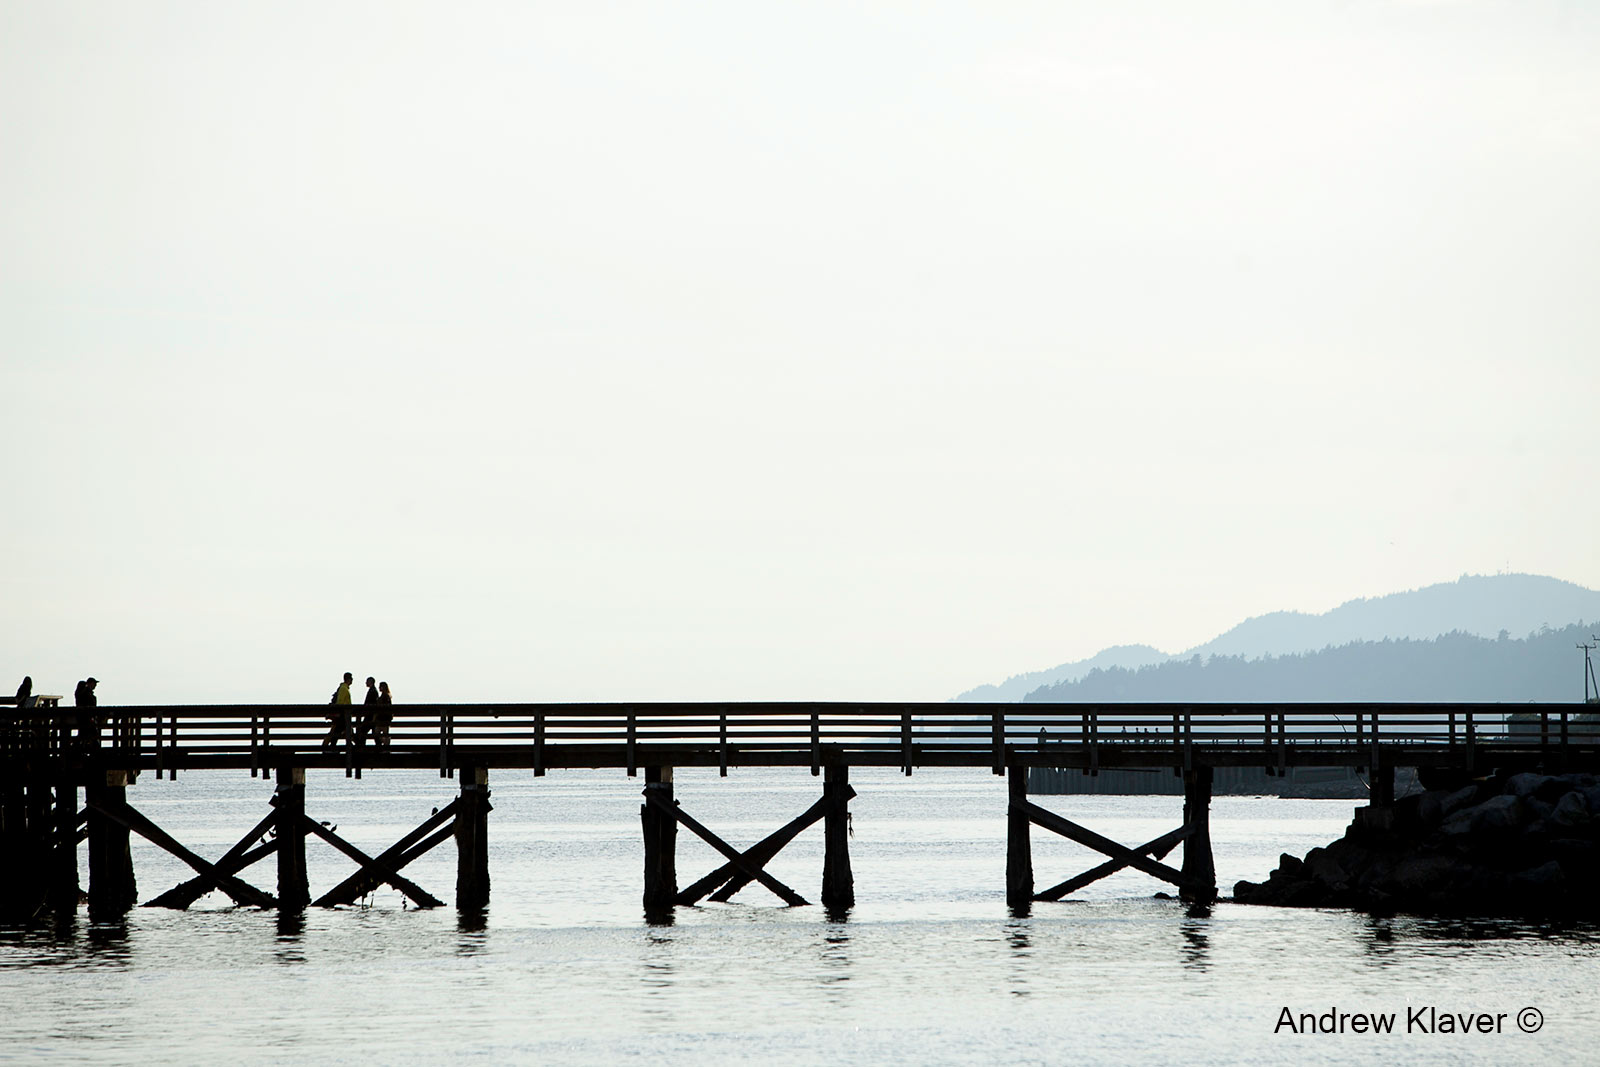 Pier, people, West Vancouver, BC, Canada, 2013